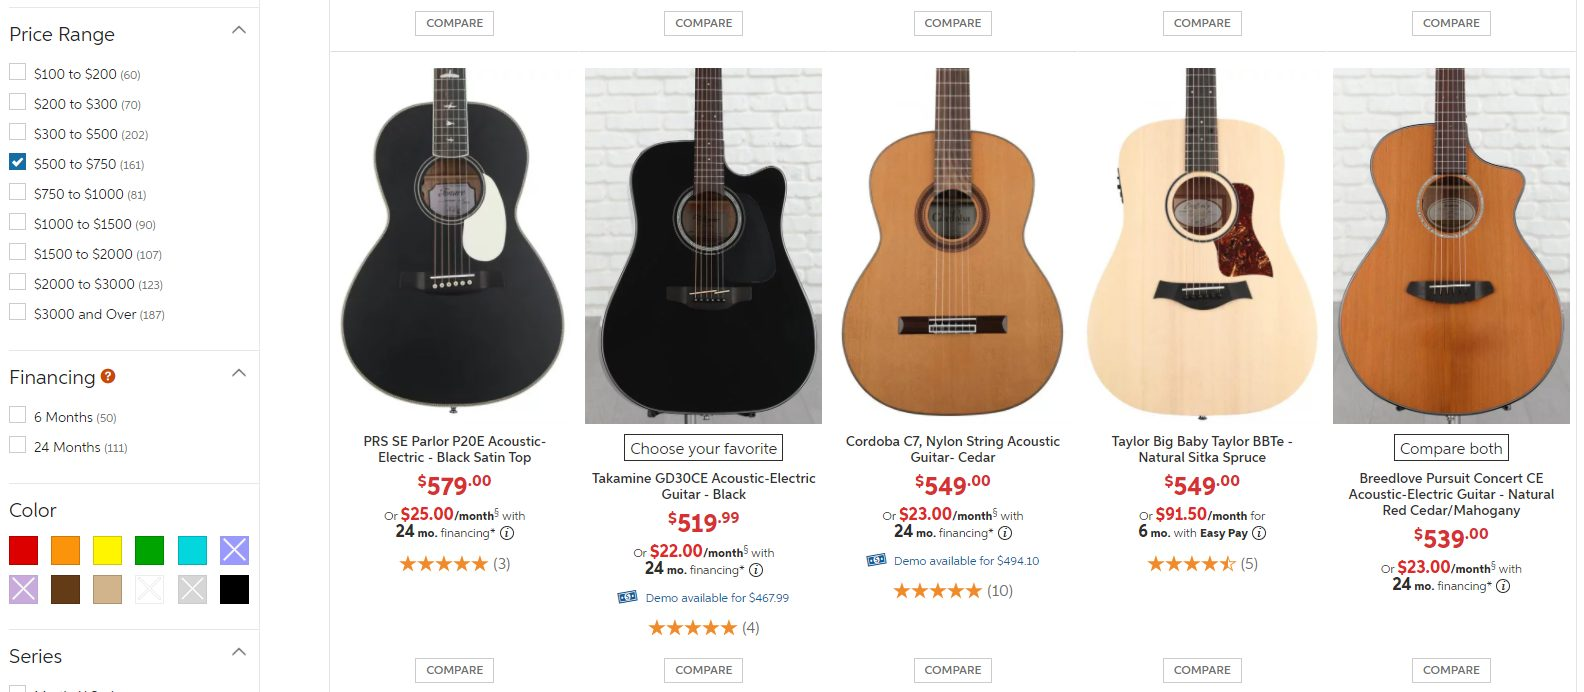 Top Guitar Options (second line) in 500 to 700 Dollar Price Range